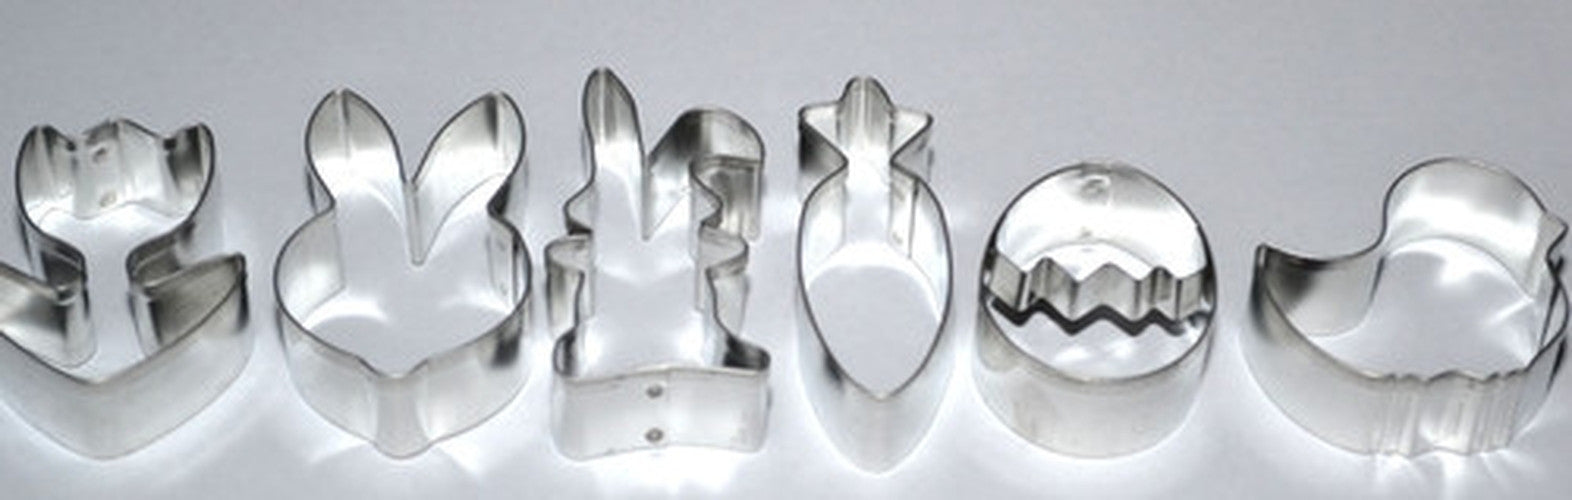 Easter Set of 6 Cookie Cutters 4.5cm - 6.5cm-Cookie Cutter Shop Australia